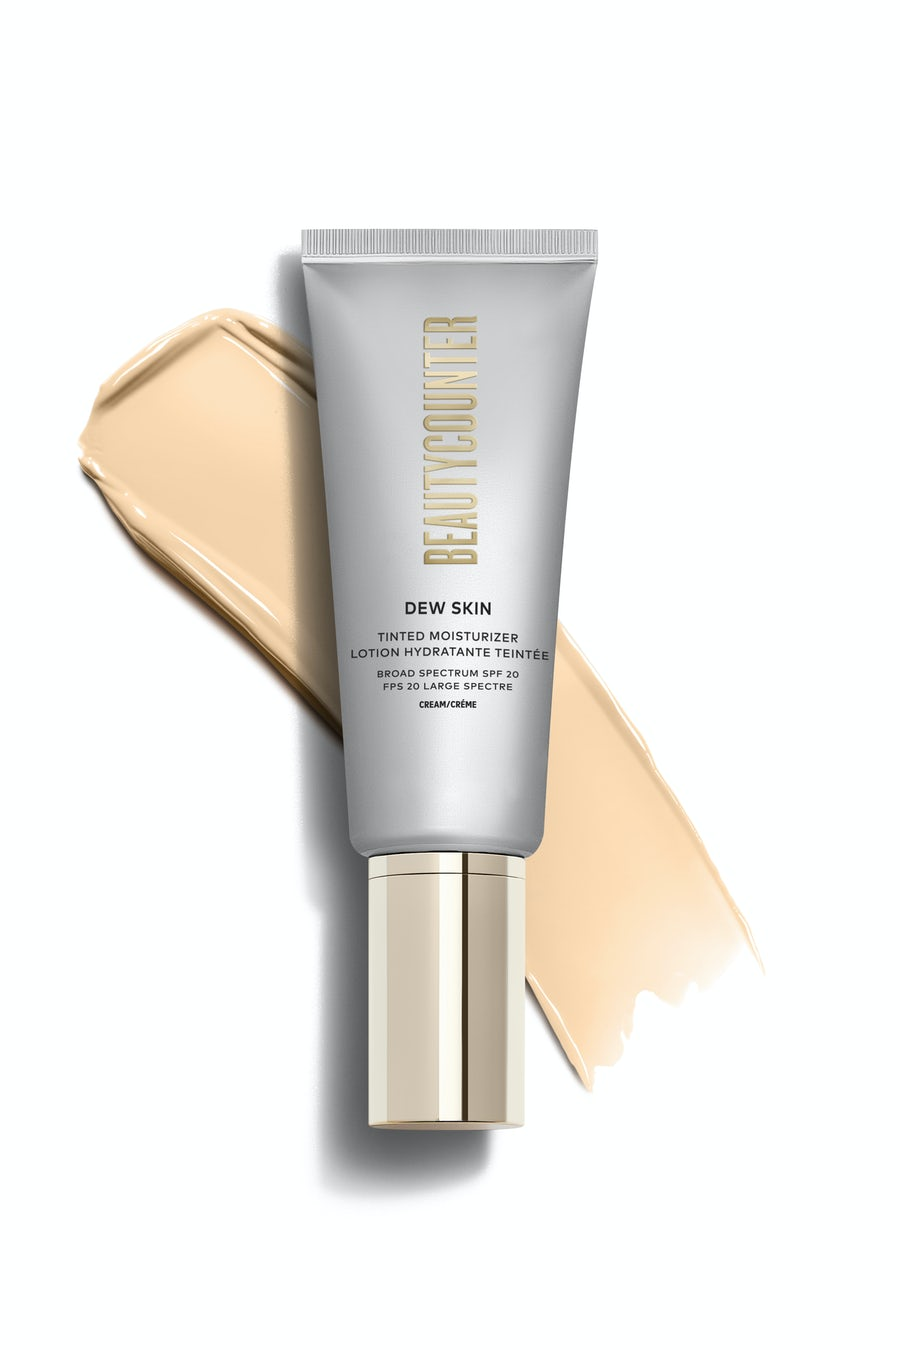 Dew Skin Tinted Moisturizer with SPF in No. 1